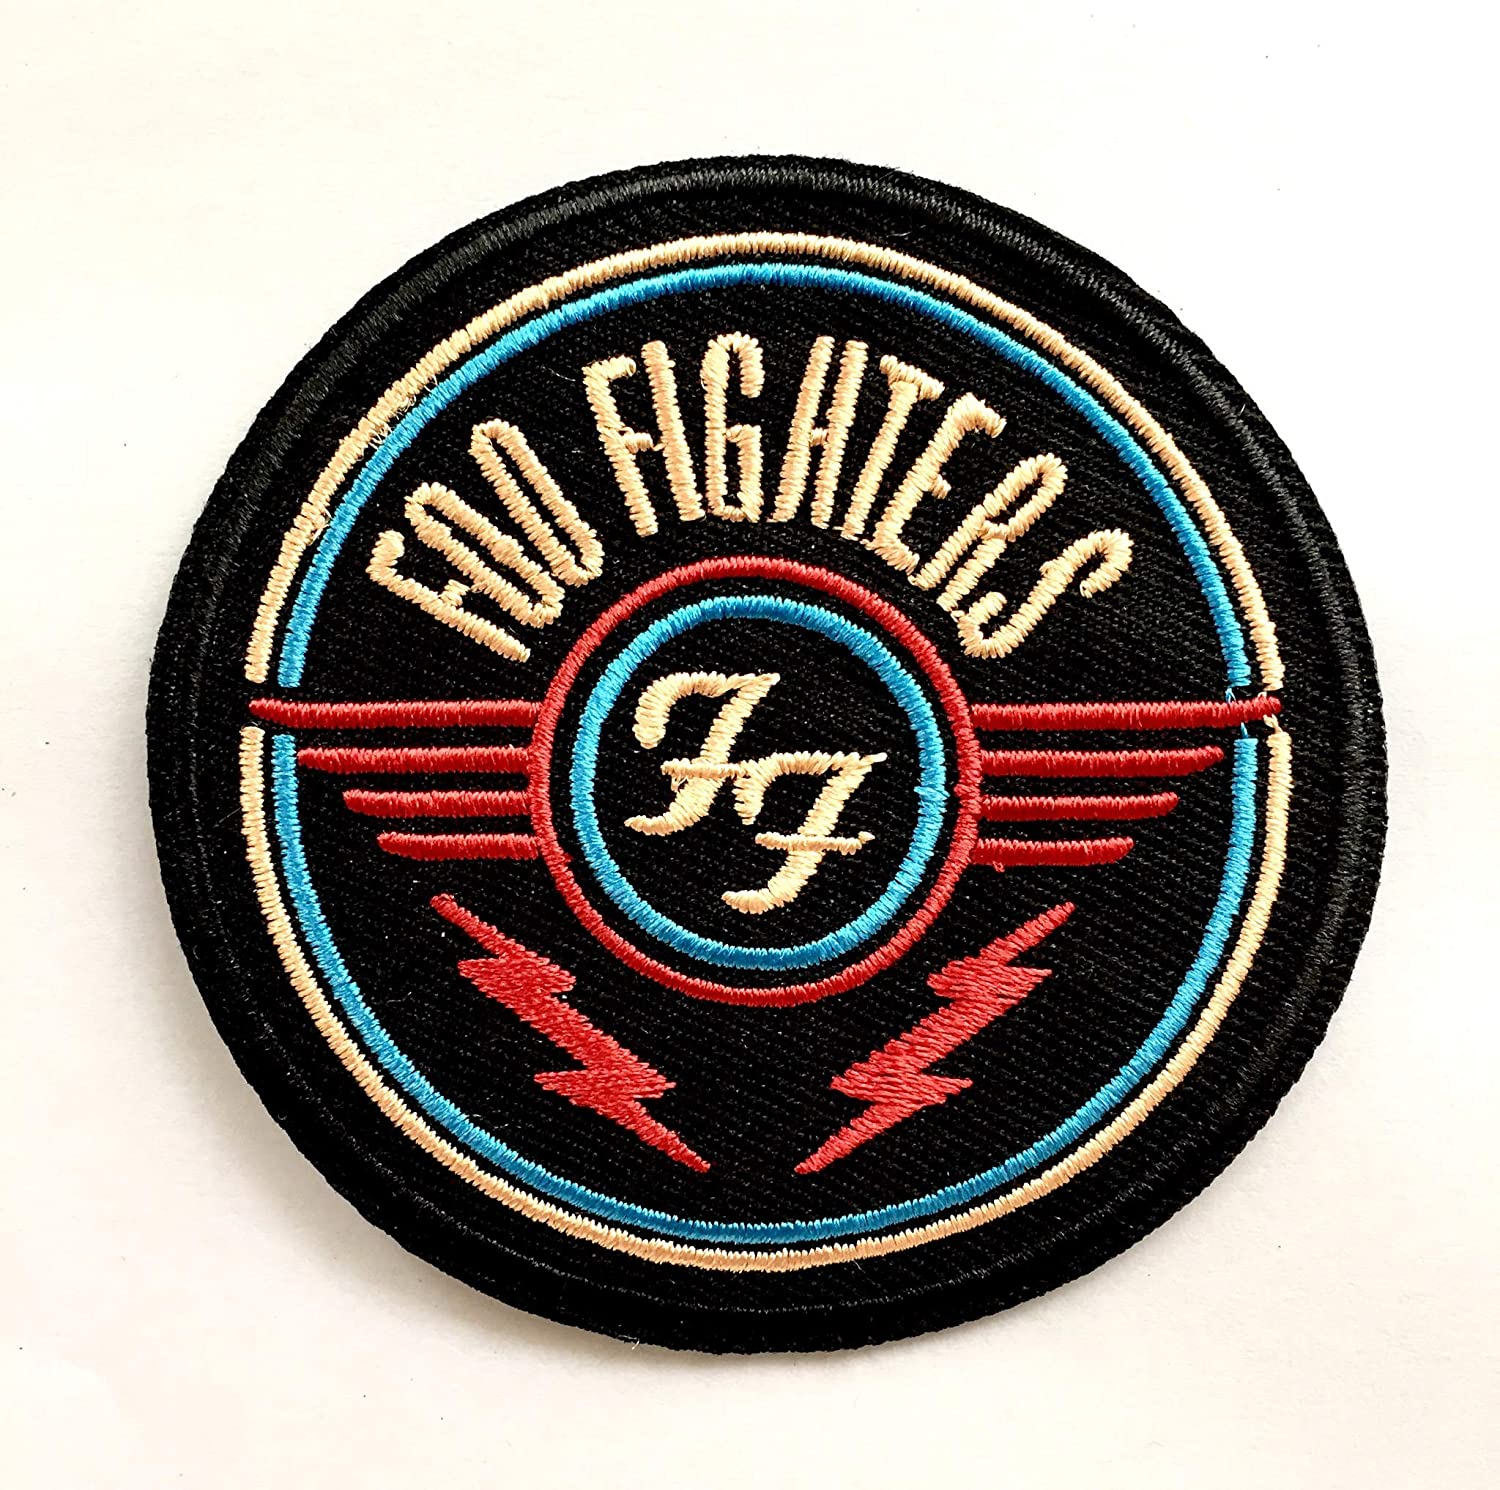 FOO FIGHTERS Iron Sew On Embroidered Patch Badge Grohl Rock Metal Music Clothing